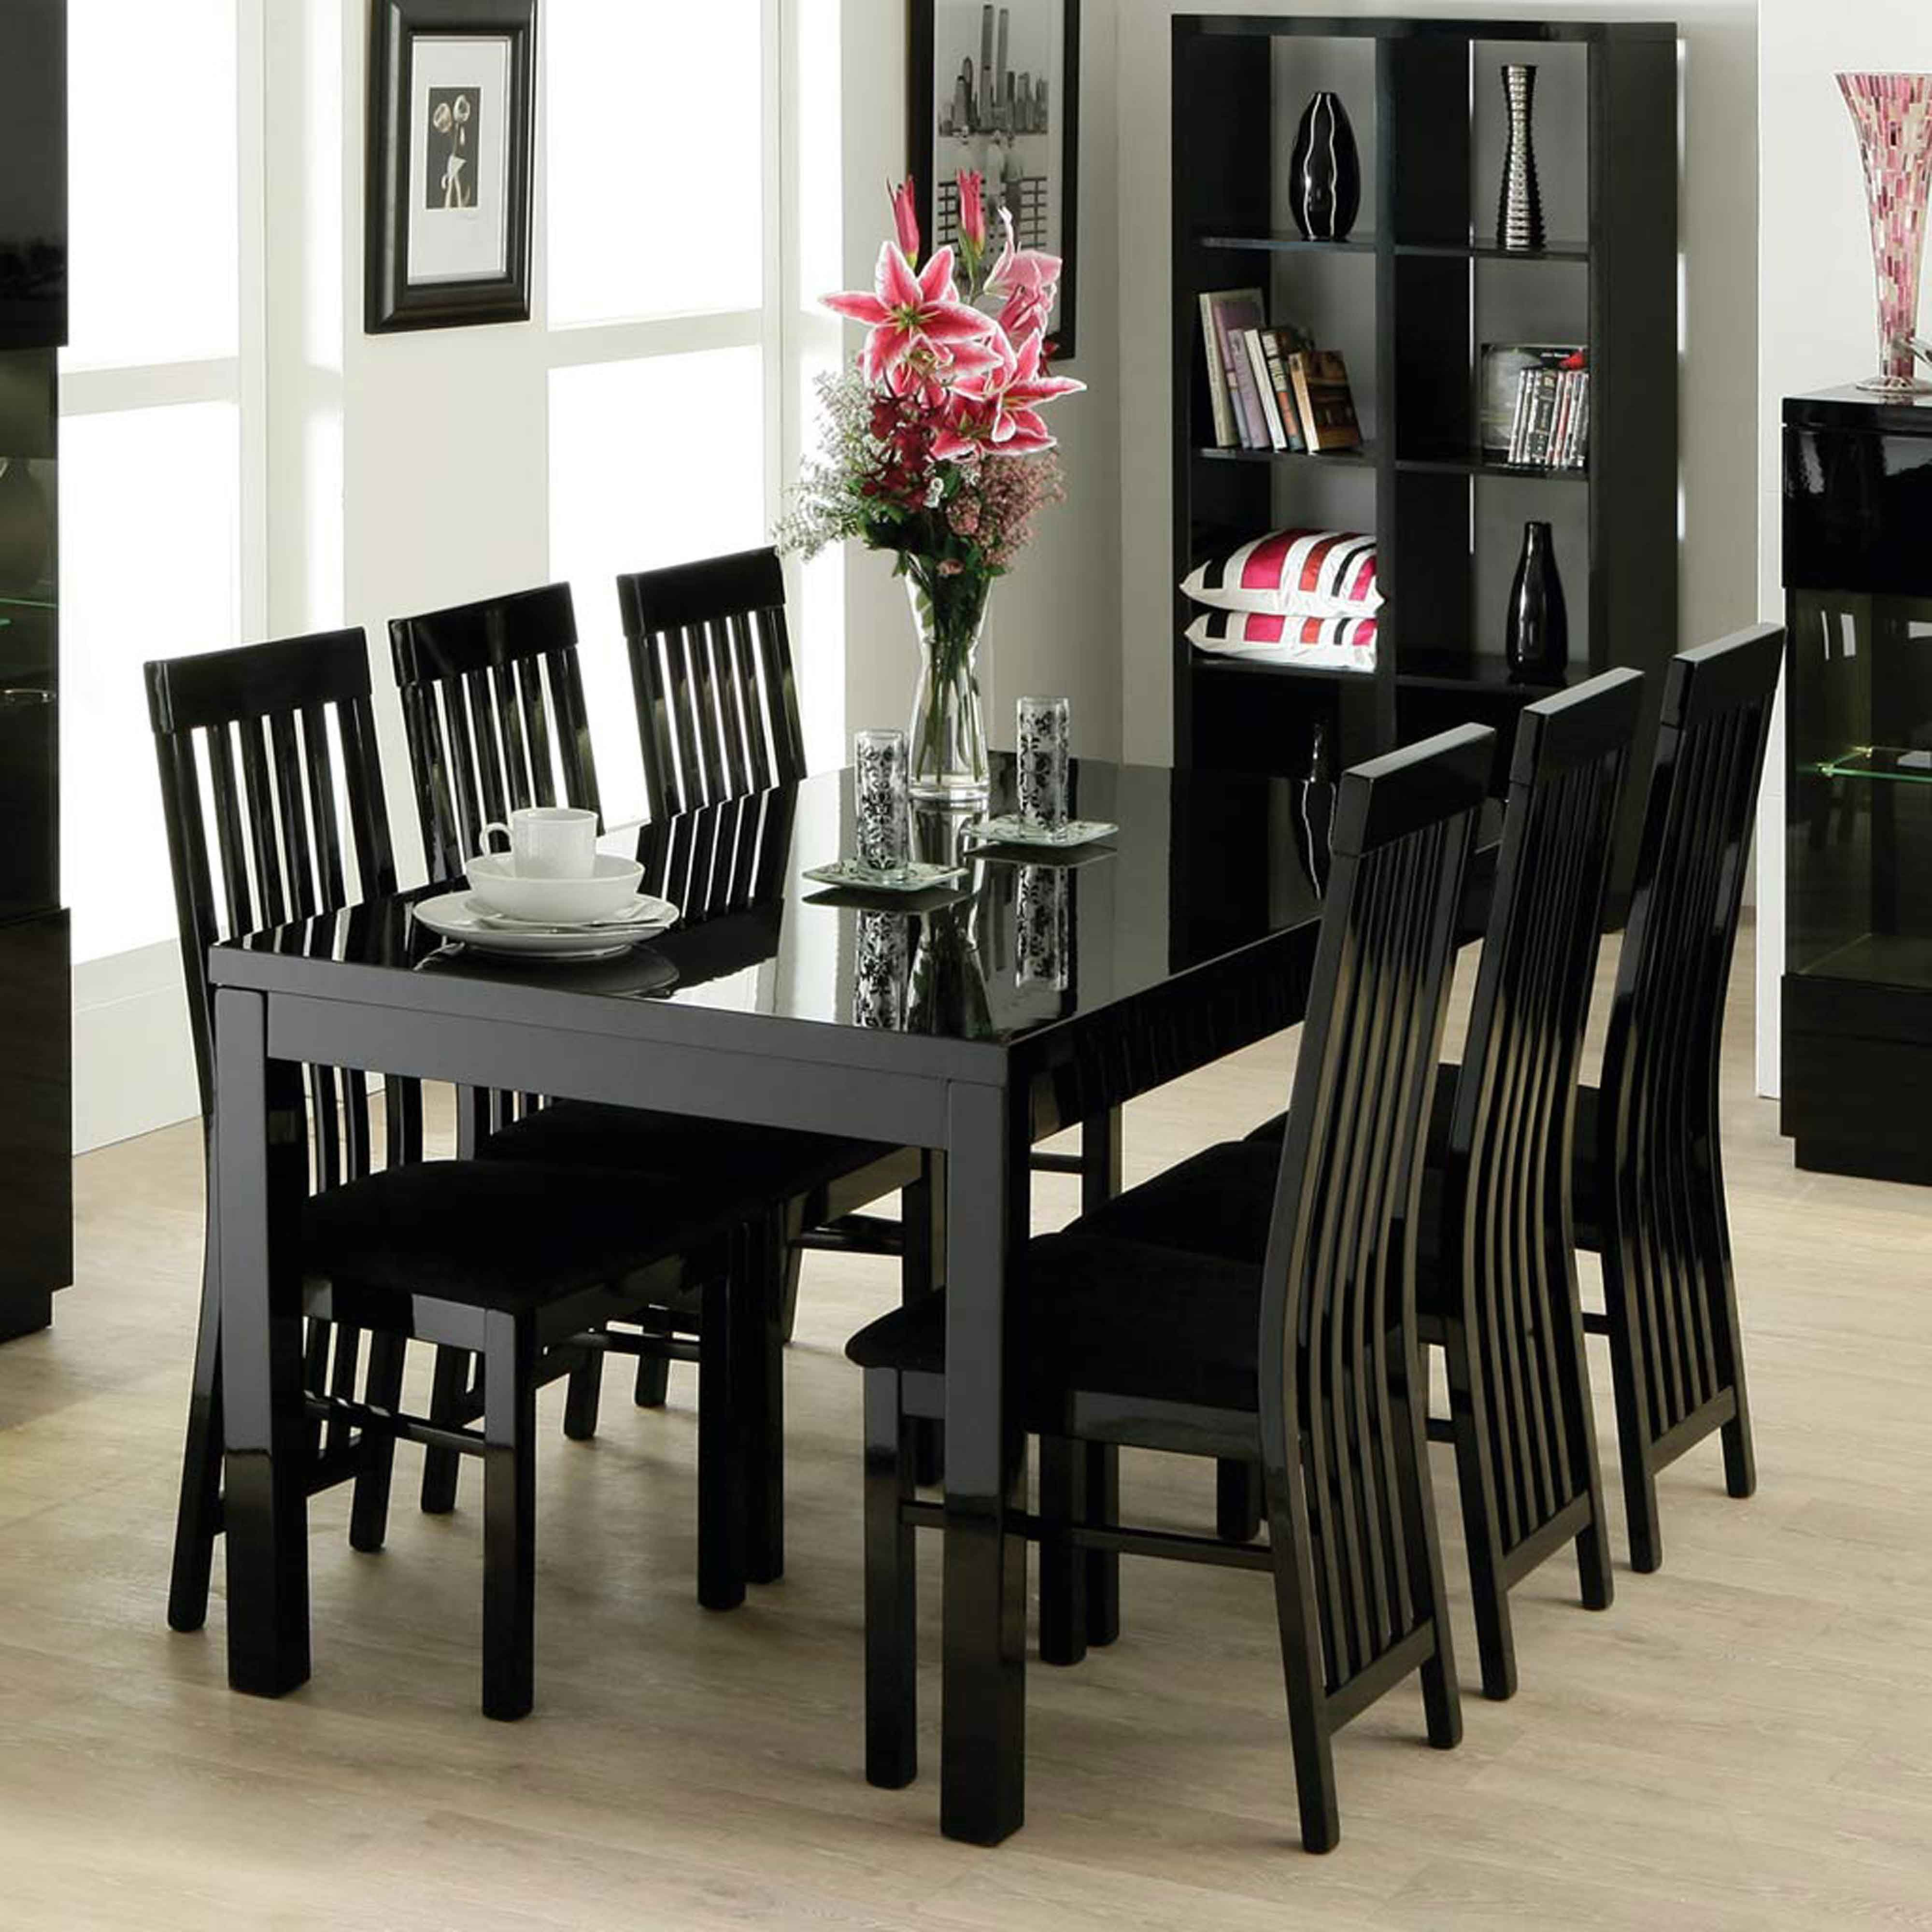 Dining Set In All Black